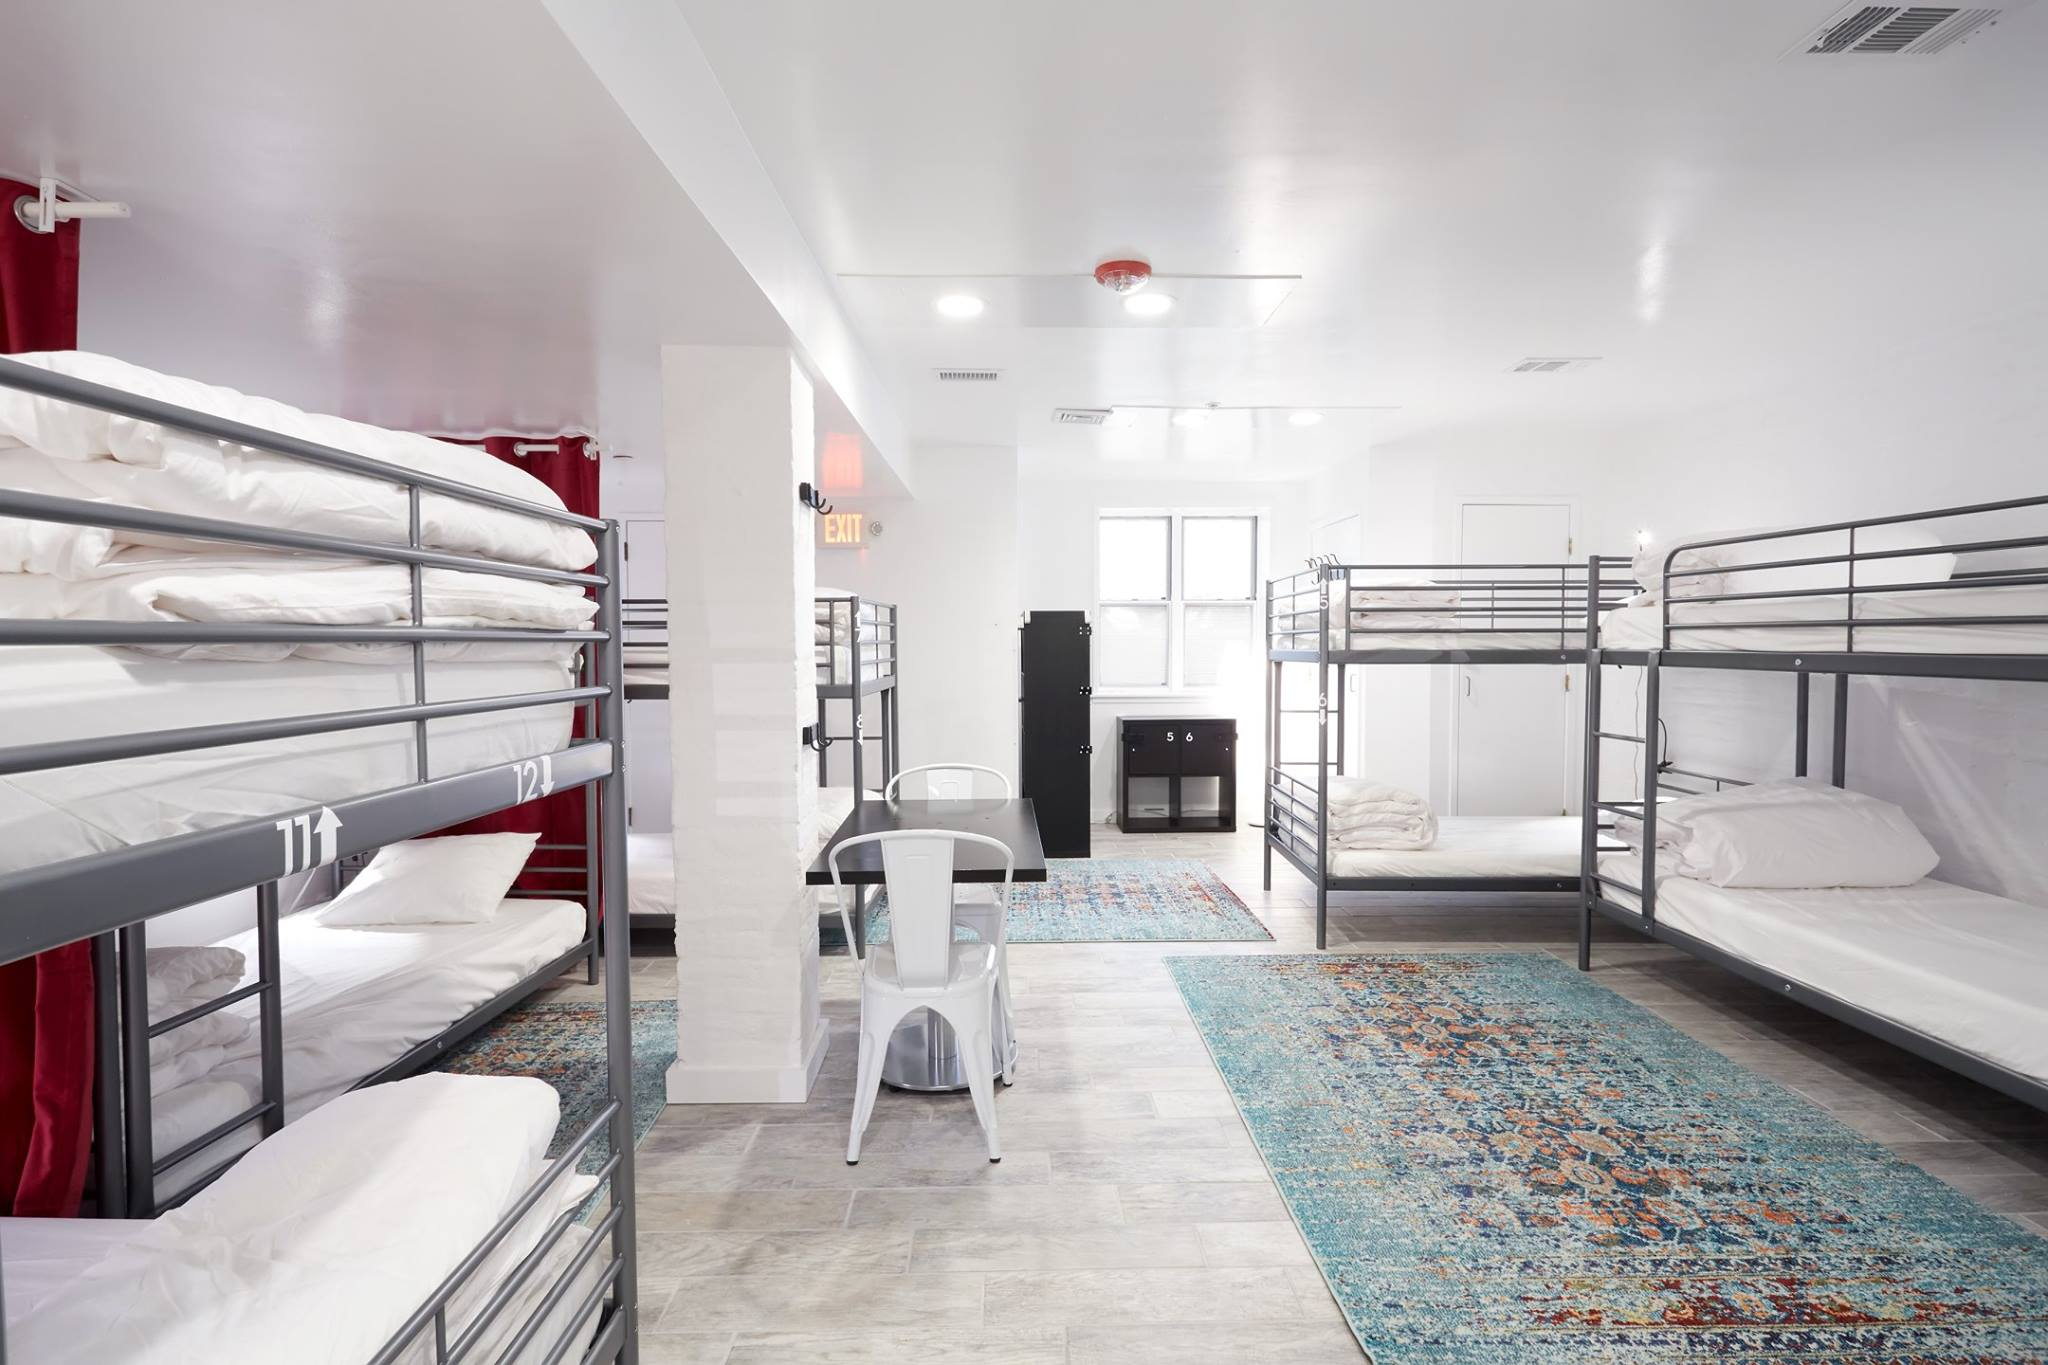 Bunk beds arranged in a clean bright backpackers dorm room